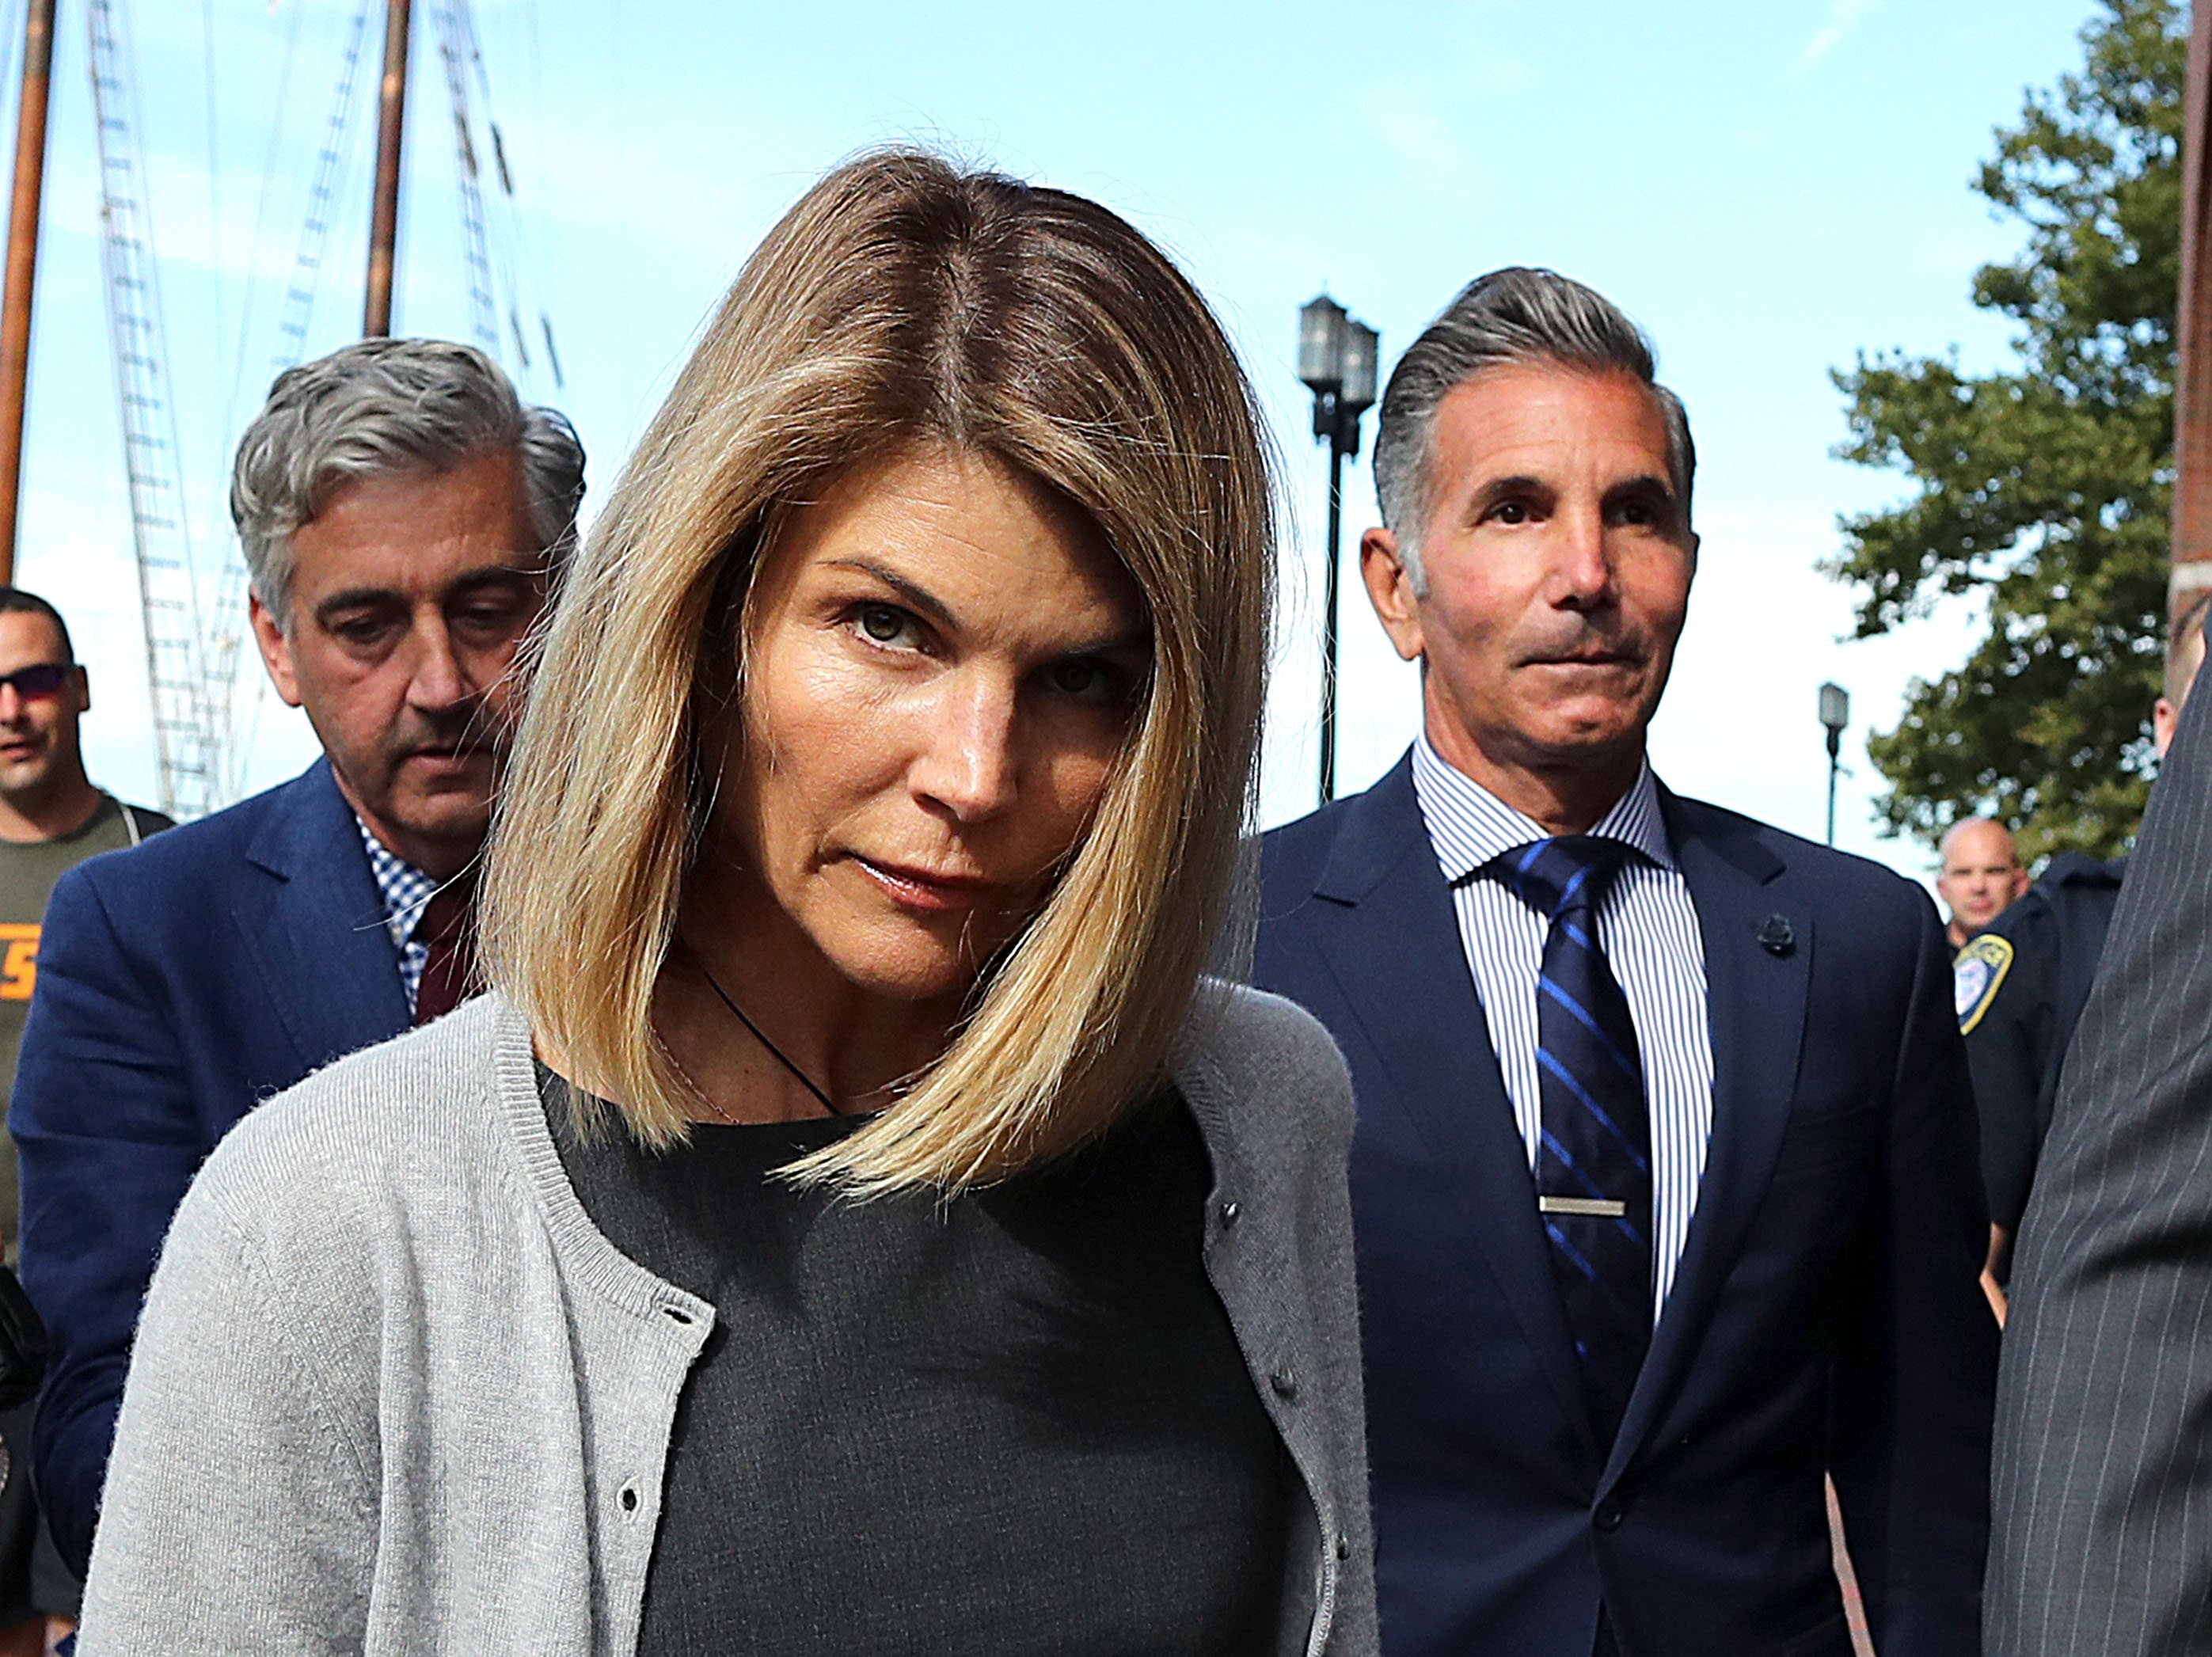 Lori Loughlin and her husband Mossimo Giannulli leave the John Joseph Moakley United States Courthouse in Boston on August. 27, 2019. | Photo: Getty Images.